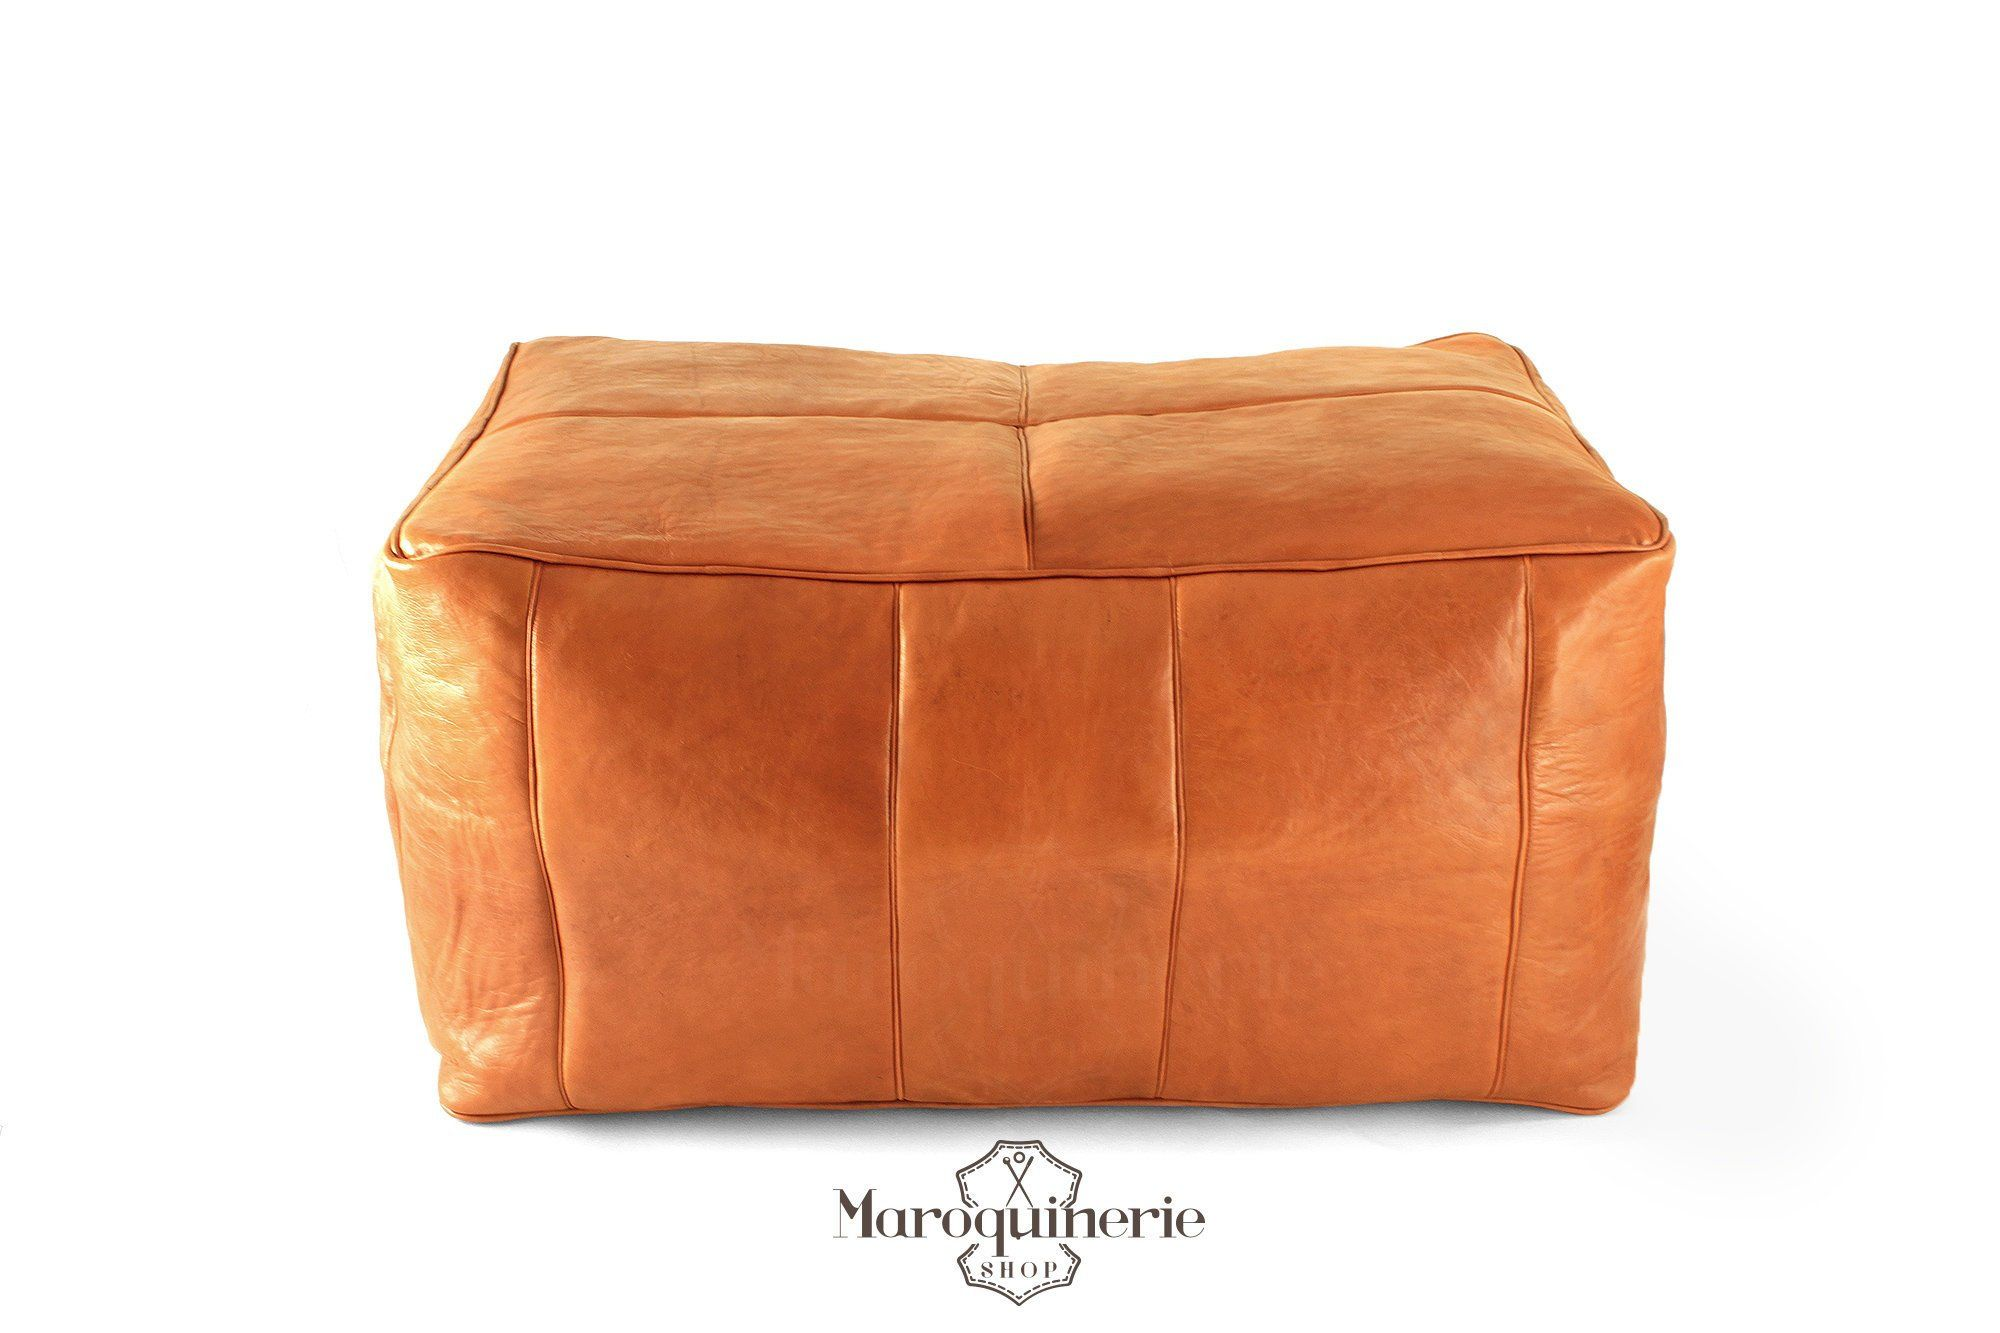 Remarkable Large Orange Leather Pouf Moroccan Leather Pouf Leather Machost Co Dining Chair Design Ideas Machostcouk